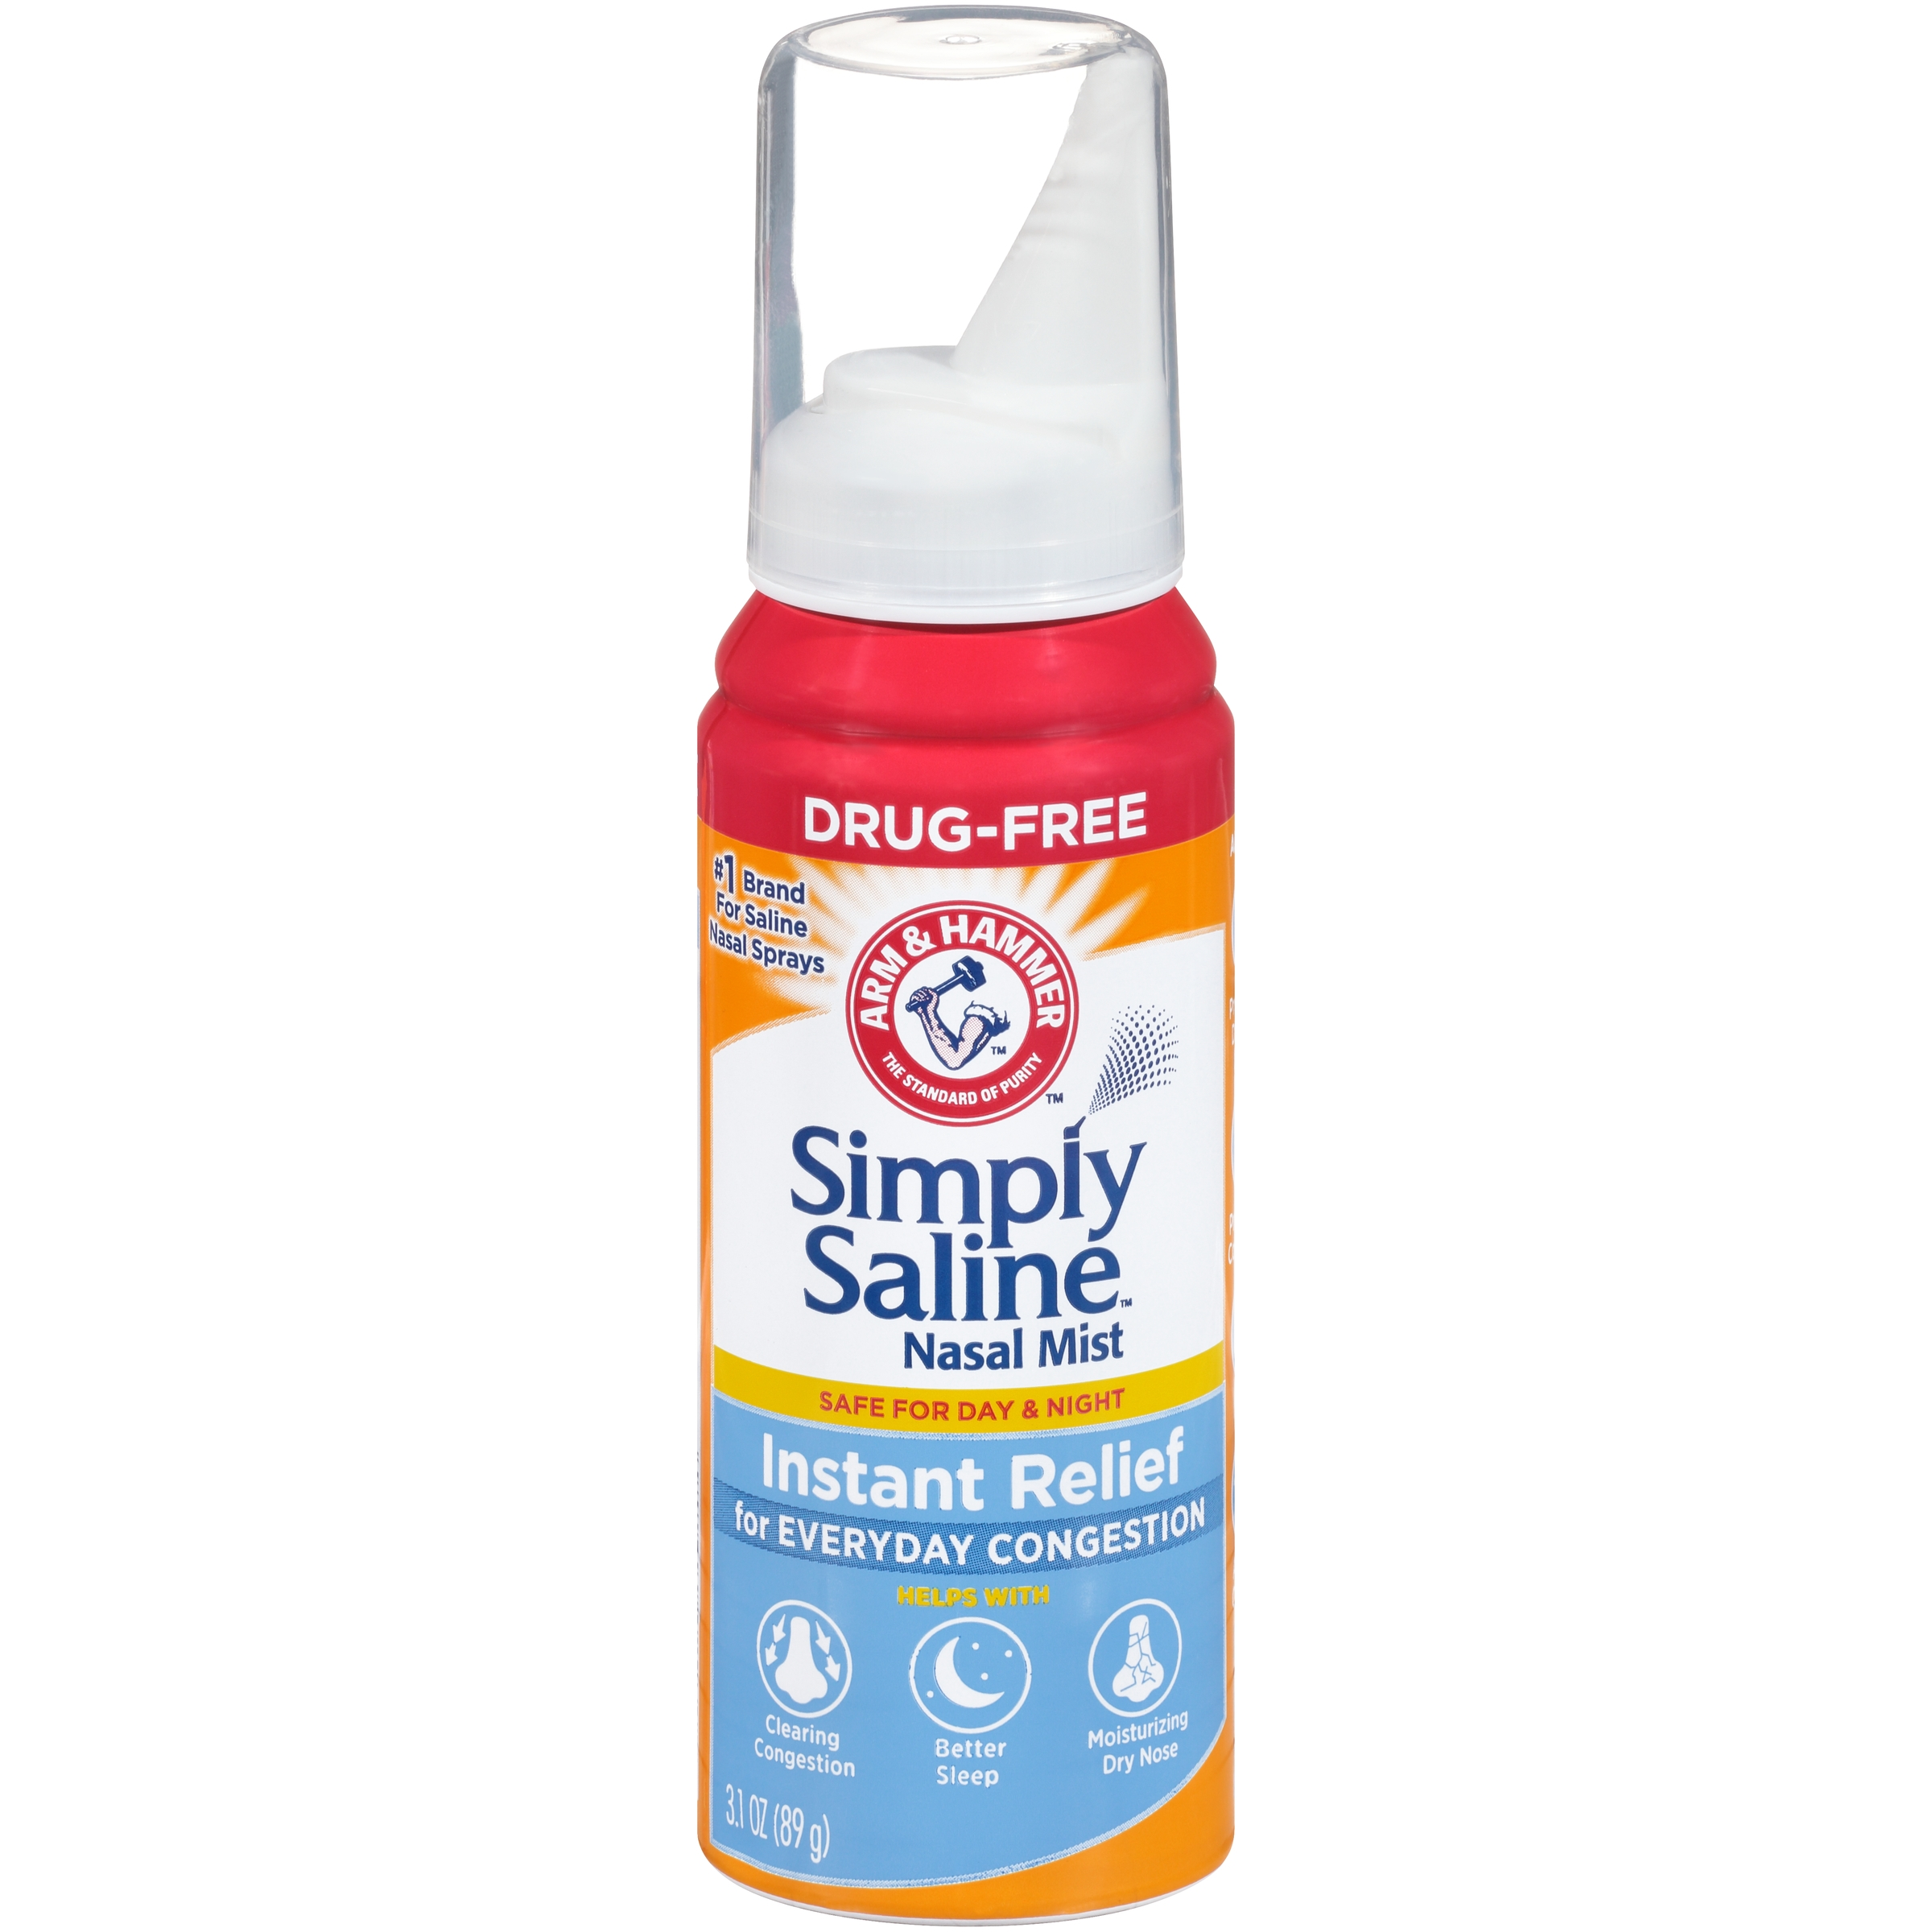 Arm & Hammer™ Simply Saline™ Nasal Relief Nasal Mist 3.0 fl. oz. Spout-Top Can